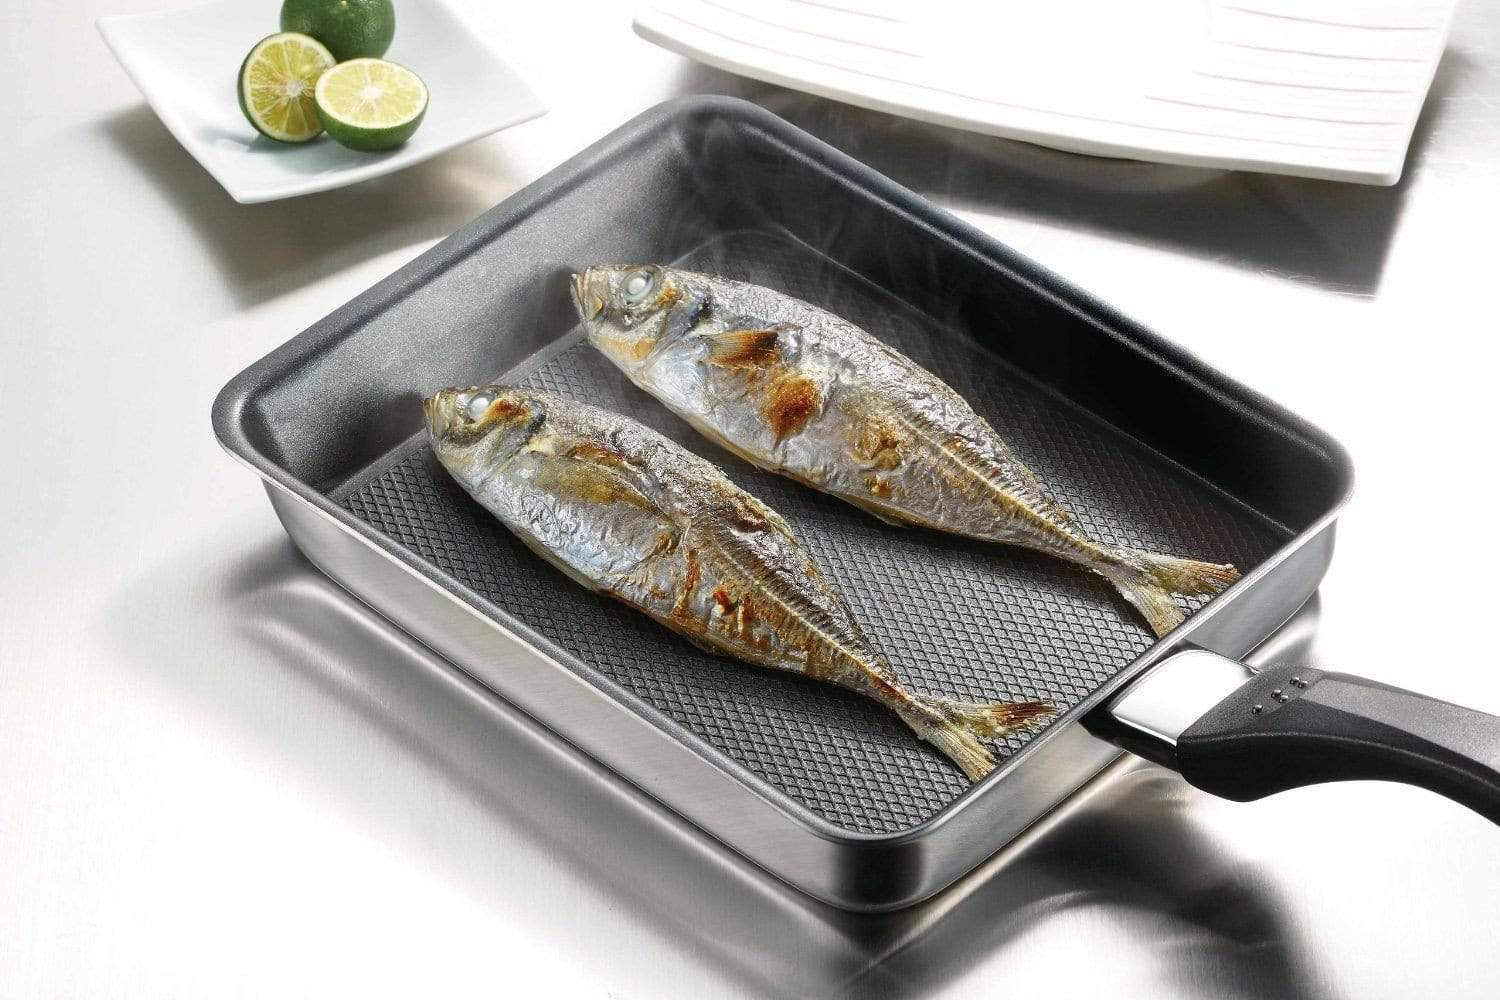 Fujinos 3-Ply Stainless Steel Non-Stick Induction Covered Deep Square Grill Pan Grill Pans